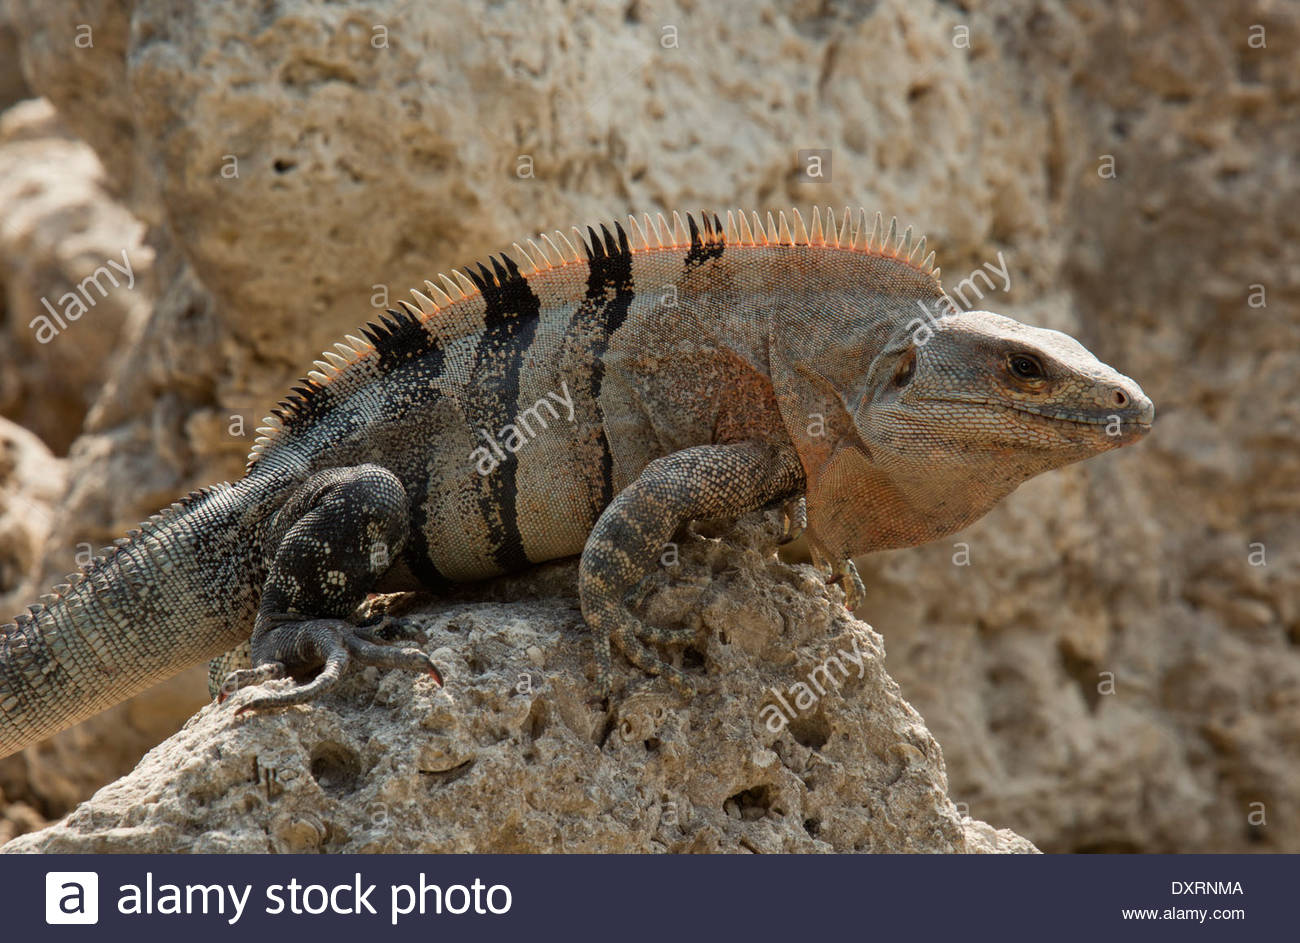 Black Spiny Tailed Iguana svg #14, Download drawings